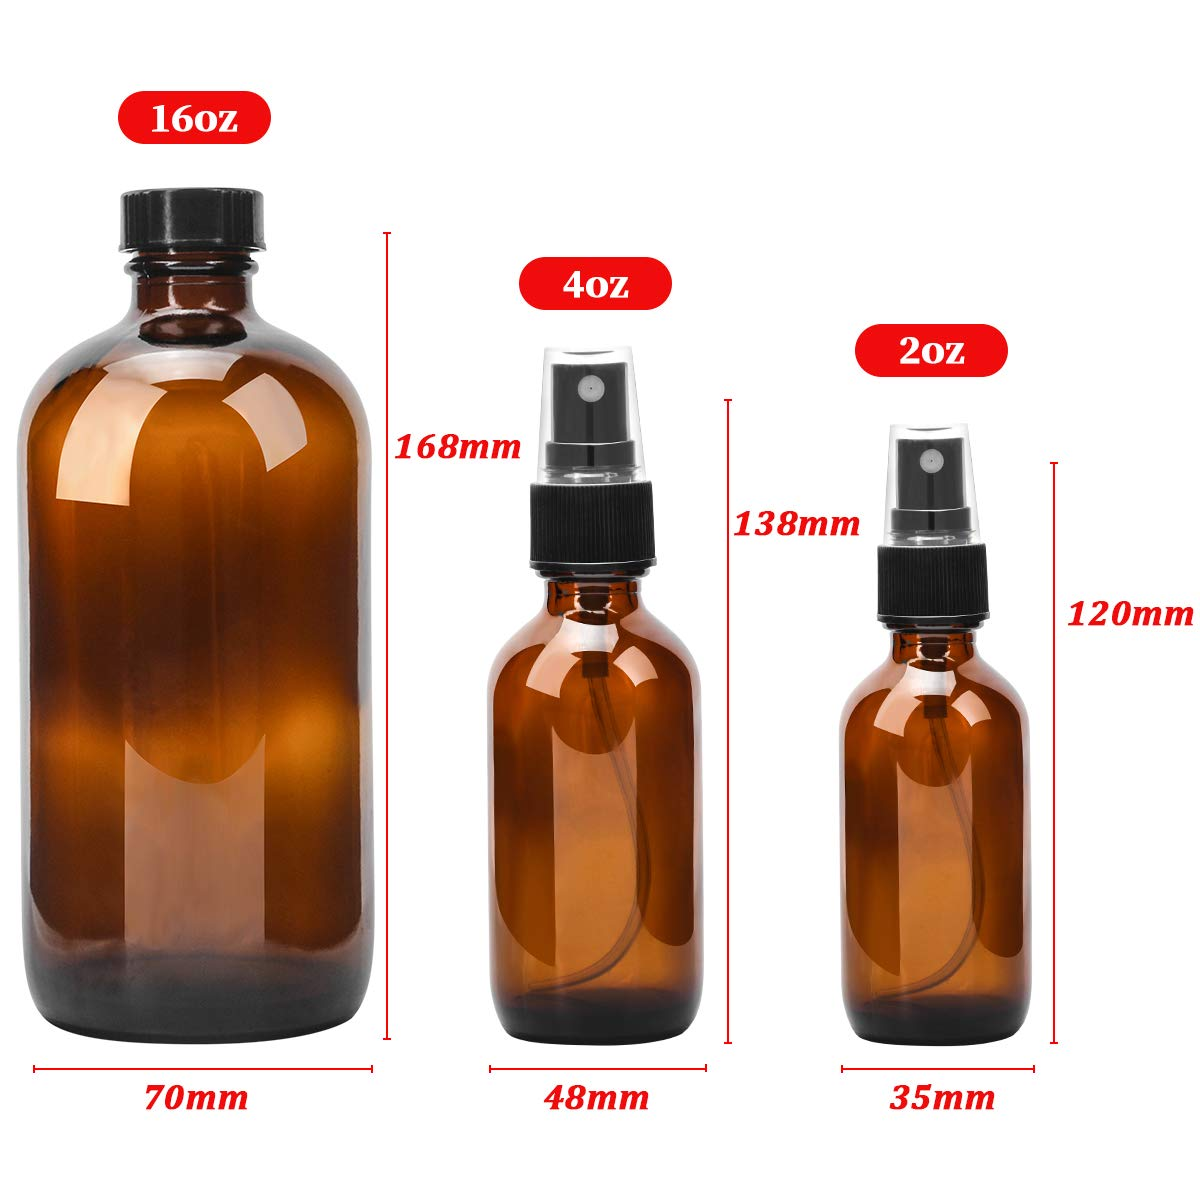 Glass Spray Bottle, ESARORA Amber Glass Spray Bottle Set For Essential Oils - Cleaning Products - Aromatherapy (16OZ x 2, 4OZ x 2, 2OZ x 4) by Esarora (Image #4)